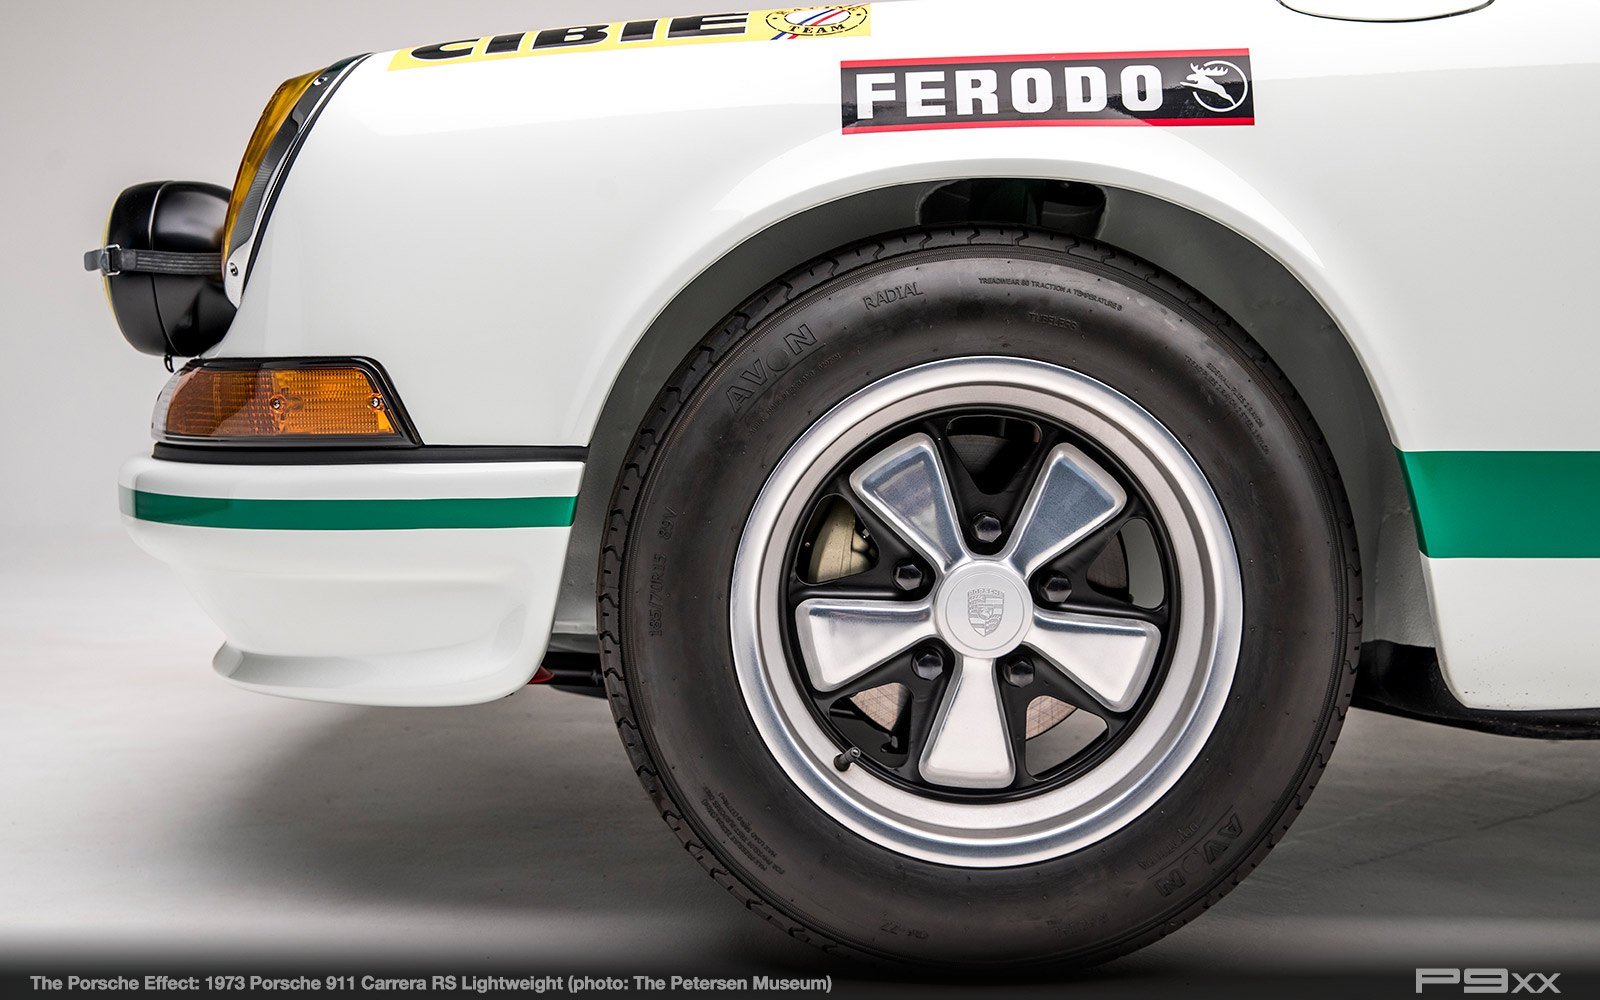 1973-911-Carrera-RS-Lightweight-Petersen-Automotive-Museum-The-Porsche-Effect-378